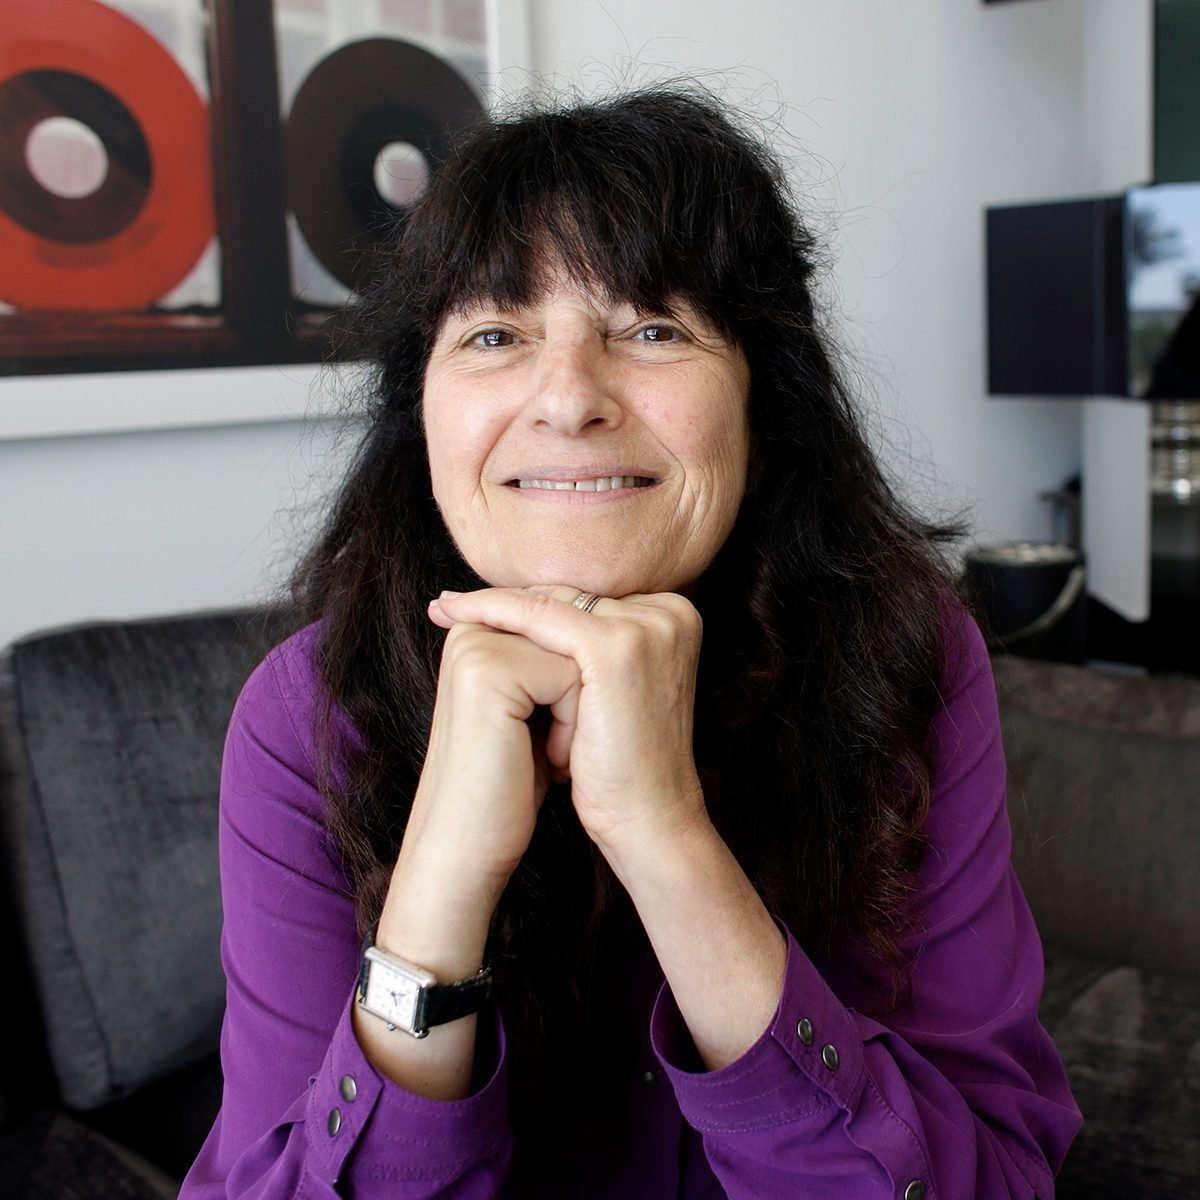 """Mandatory Credit: Photo by Lynne Sladky/AP/REX/Shutterstock (6133742a) Ruth Reichl Ruth Reichl, the former editor-in-chief of Gourmet magazine, poses for a photograph in Miami Beach, Fla. In the book """"My Kitchen Year,"""" Reichl writes of the months after the publication was shut down after nearly 70 years Food Finds Ruth Reichl, Miami Beach, USA"""